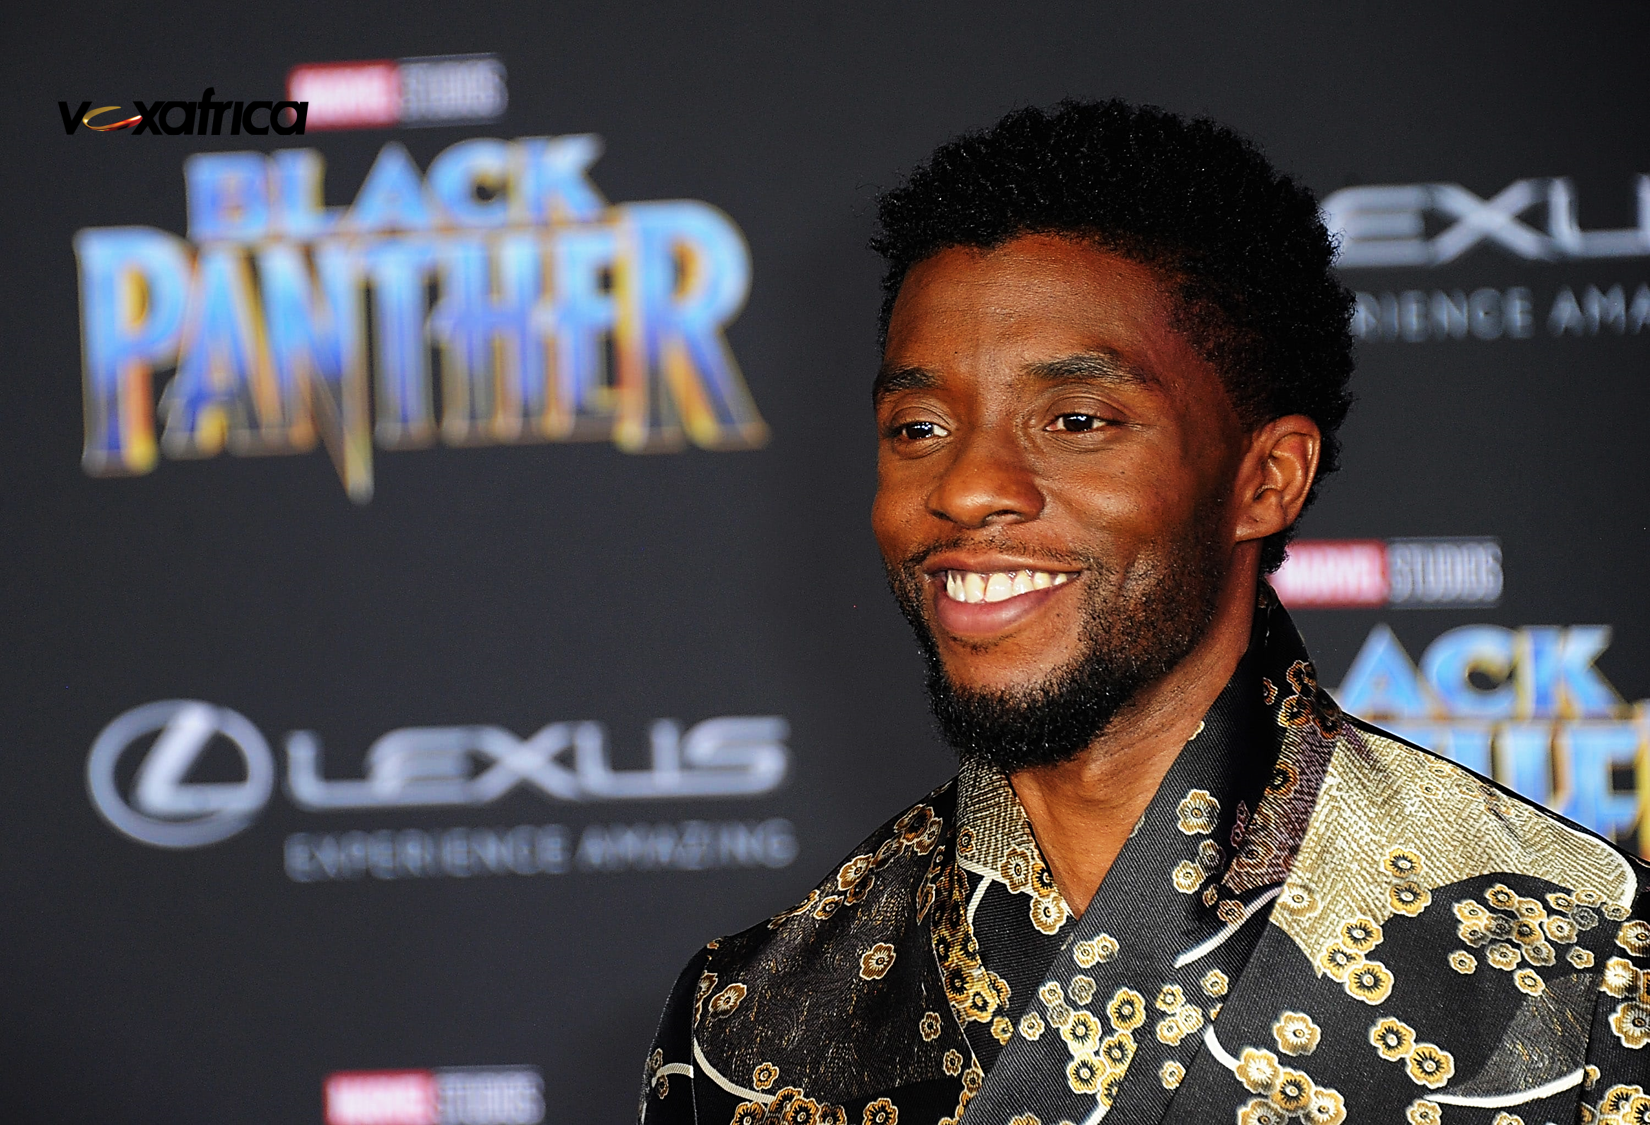 'BLACK PANTHER' STAR BOSEMAN DIES AFTER PRIVATE BATTLE WITH CANCER